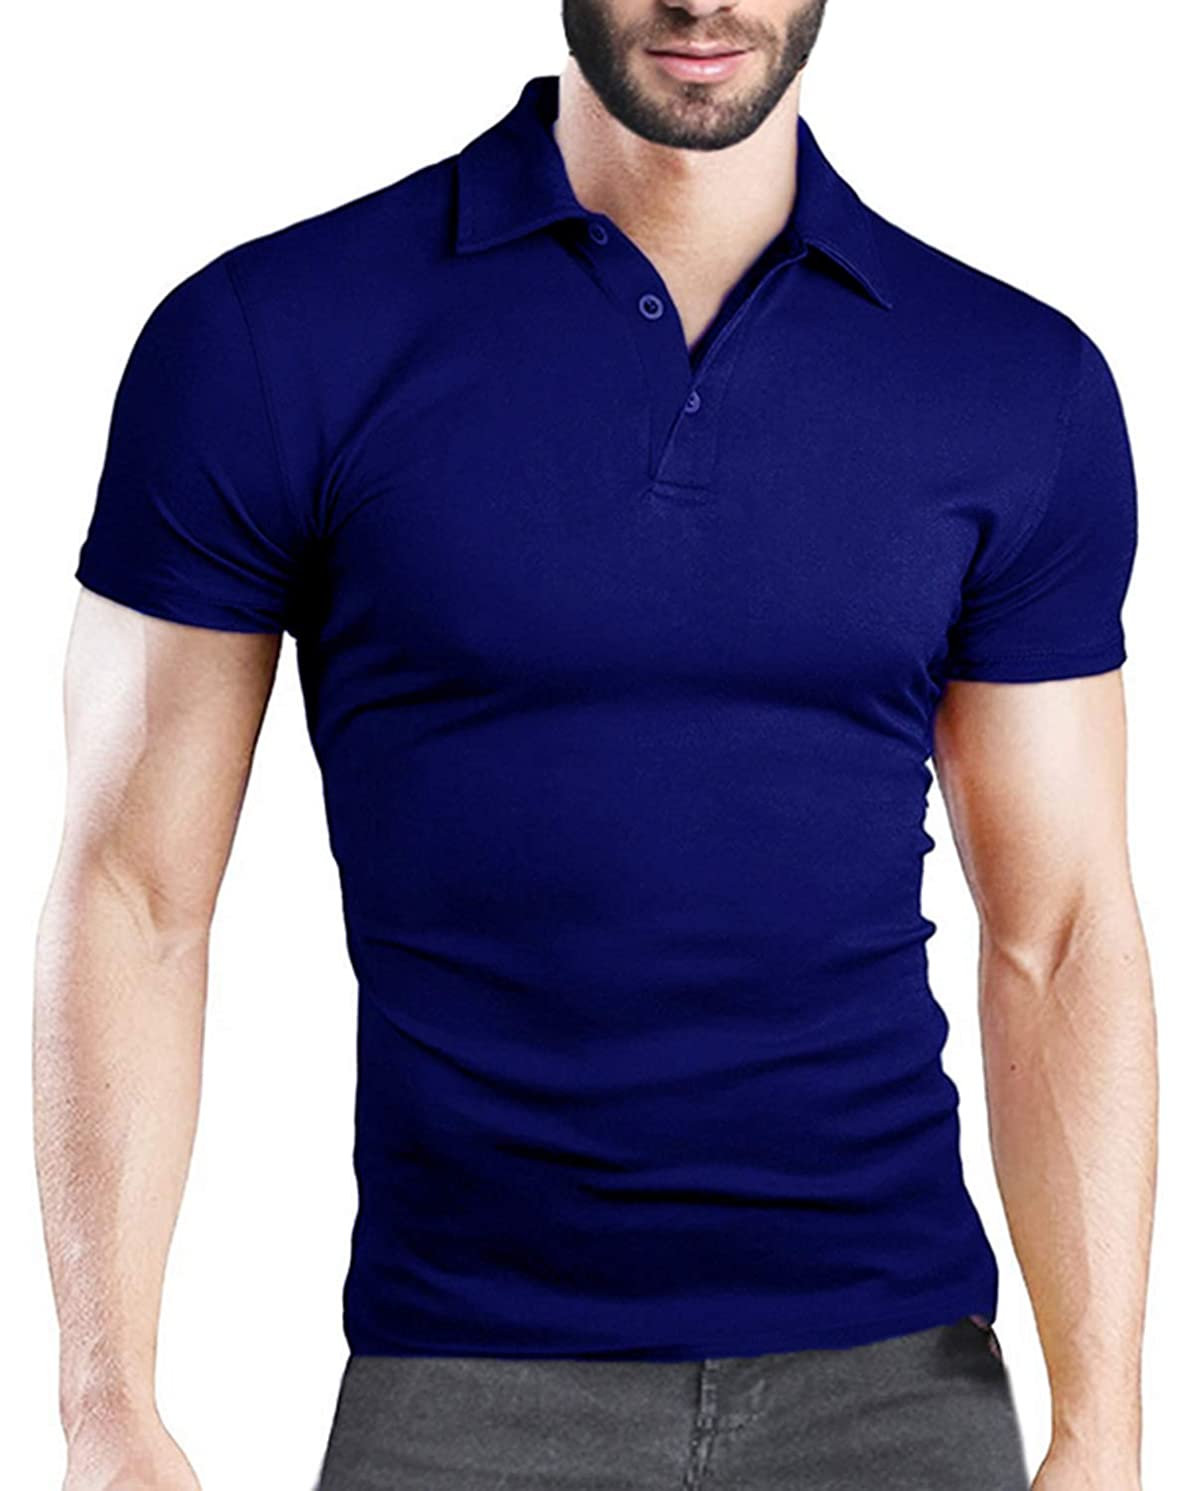 MODCHOK Men's Poloshirt Short Sleeve Collar T Shirts Cotton Tee Button Casual Slim Fit Tops